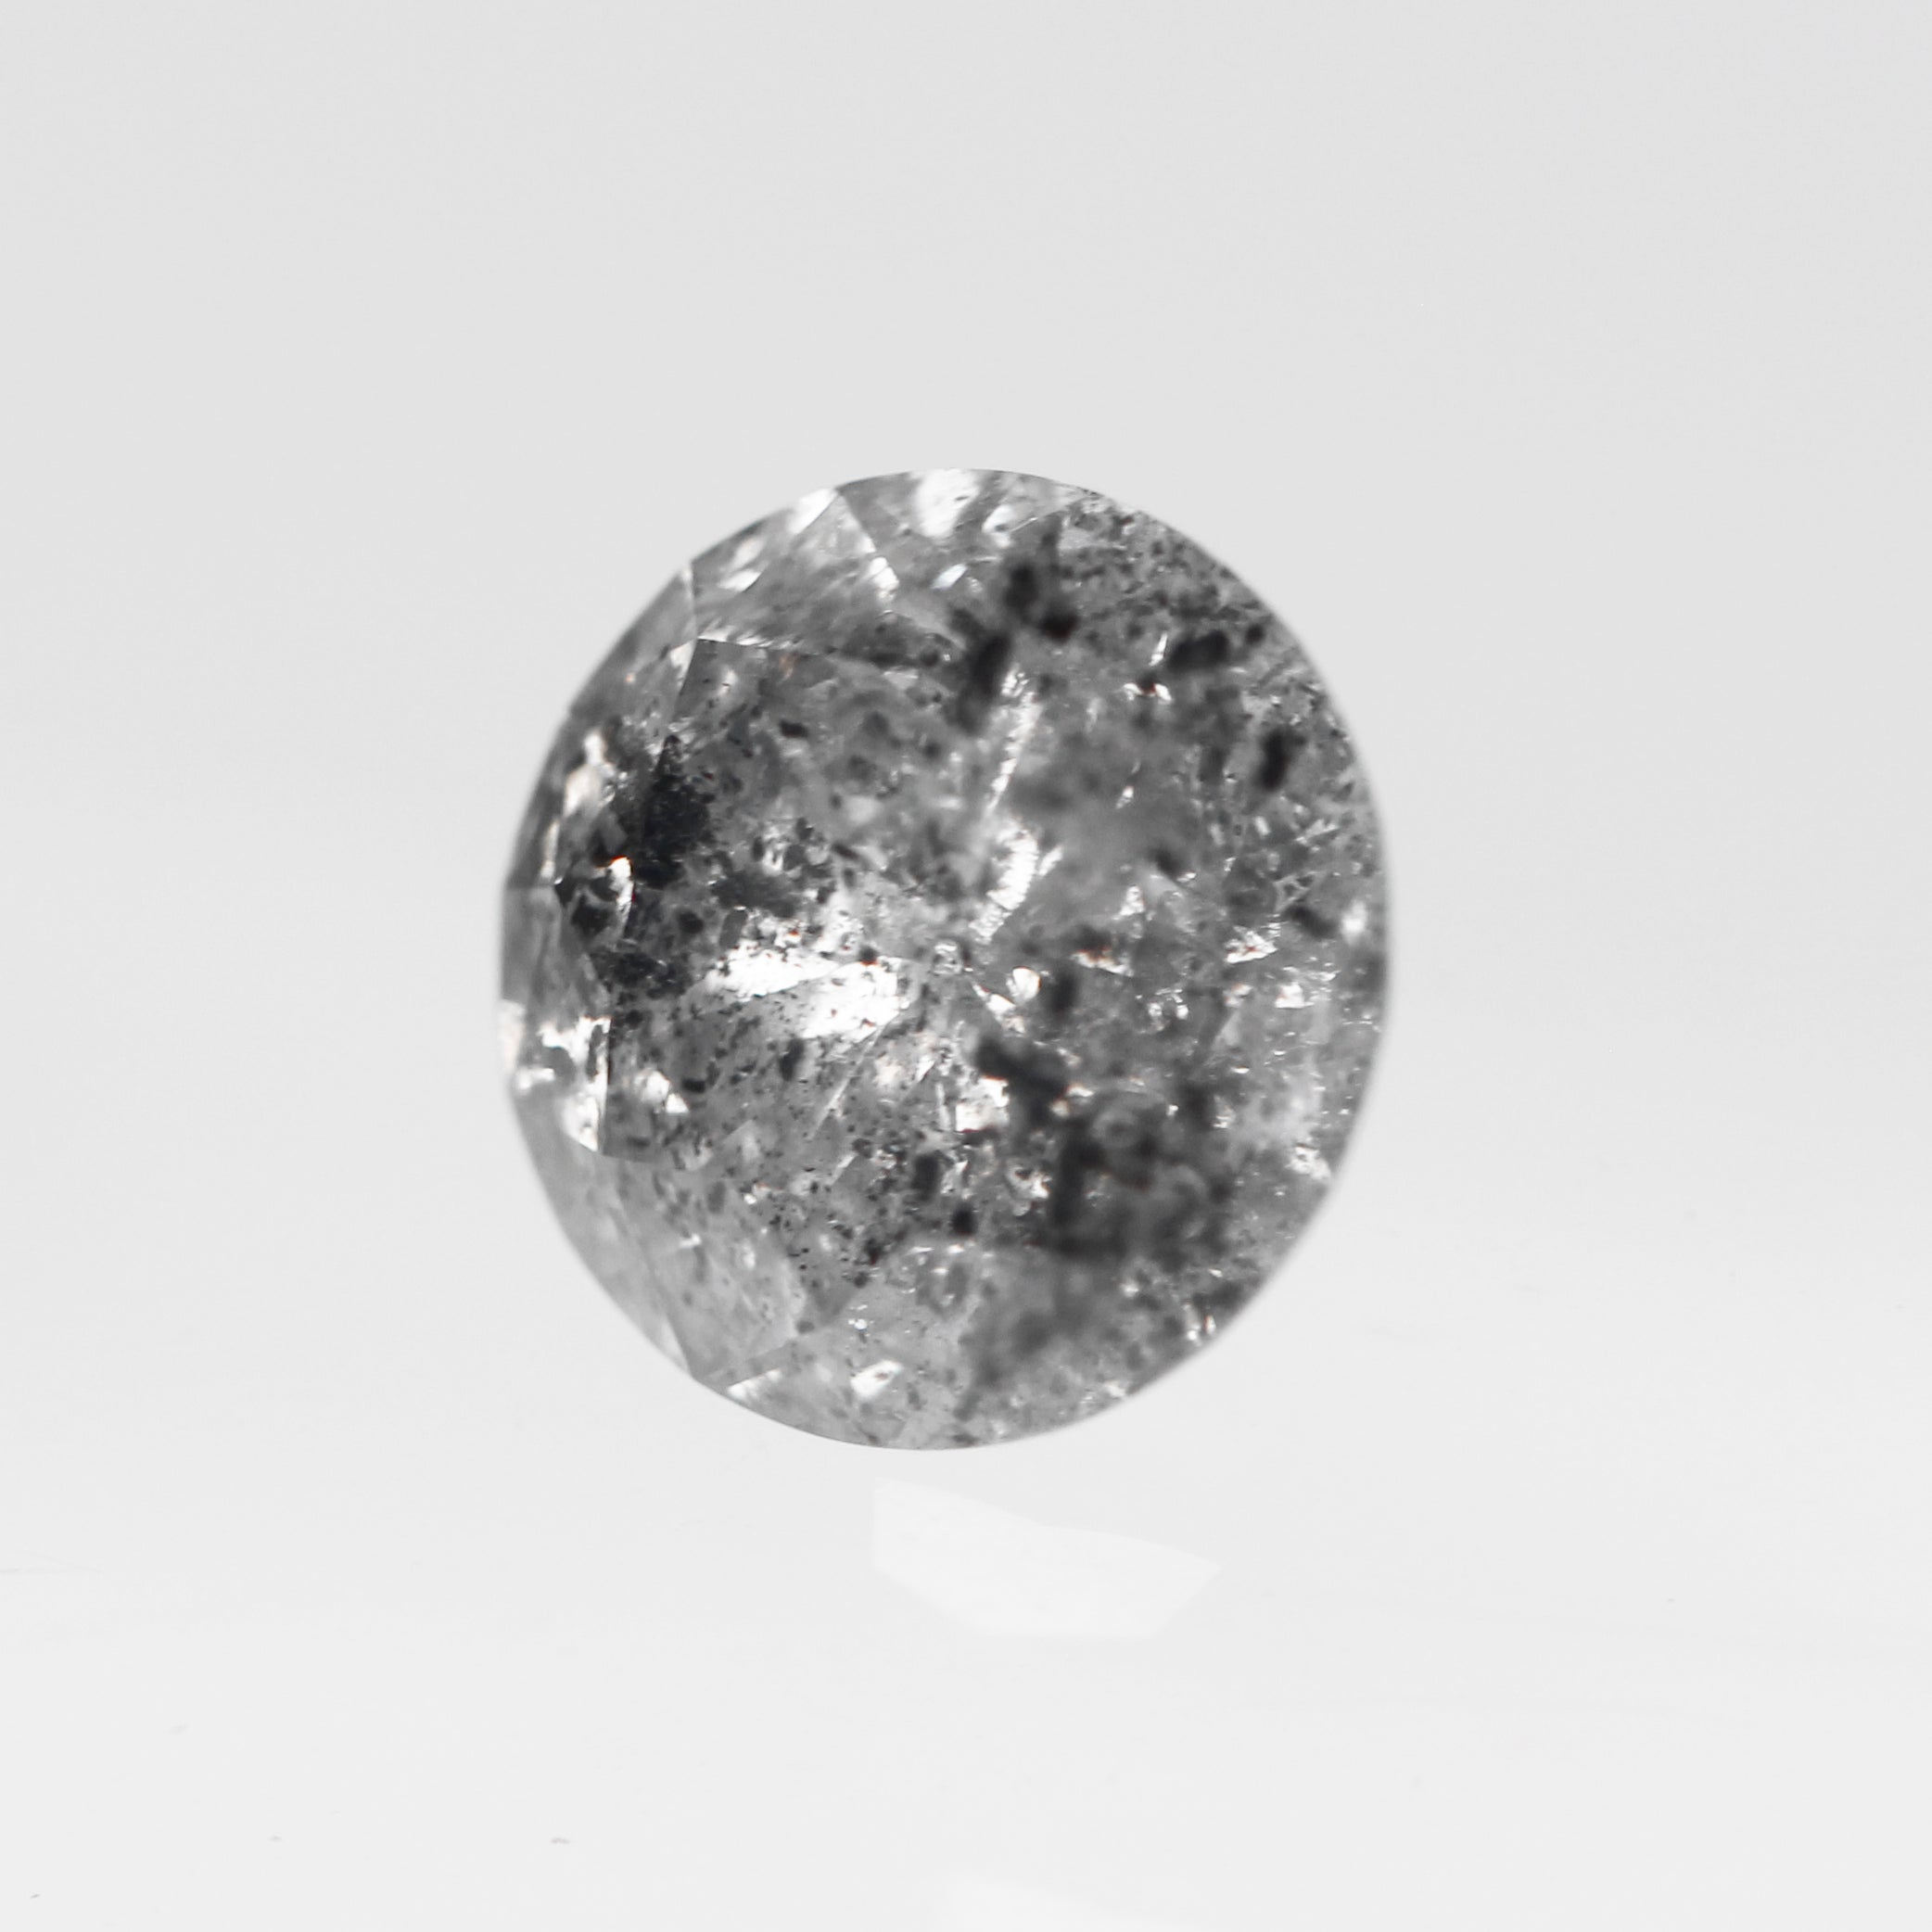 2.56 Carat Round Celestial Diamond for Custom Work - Inventory Code RBS256 - Celestial Diamonds ® by Midwinter Co.